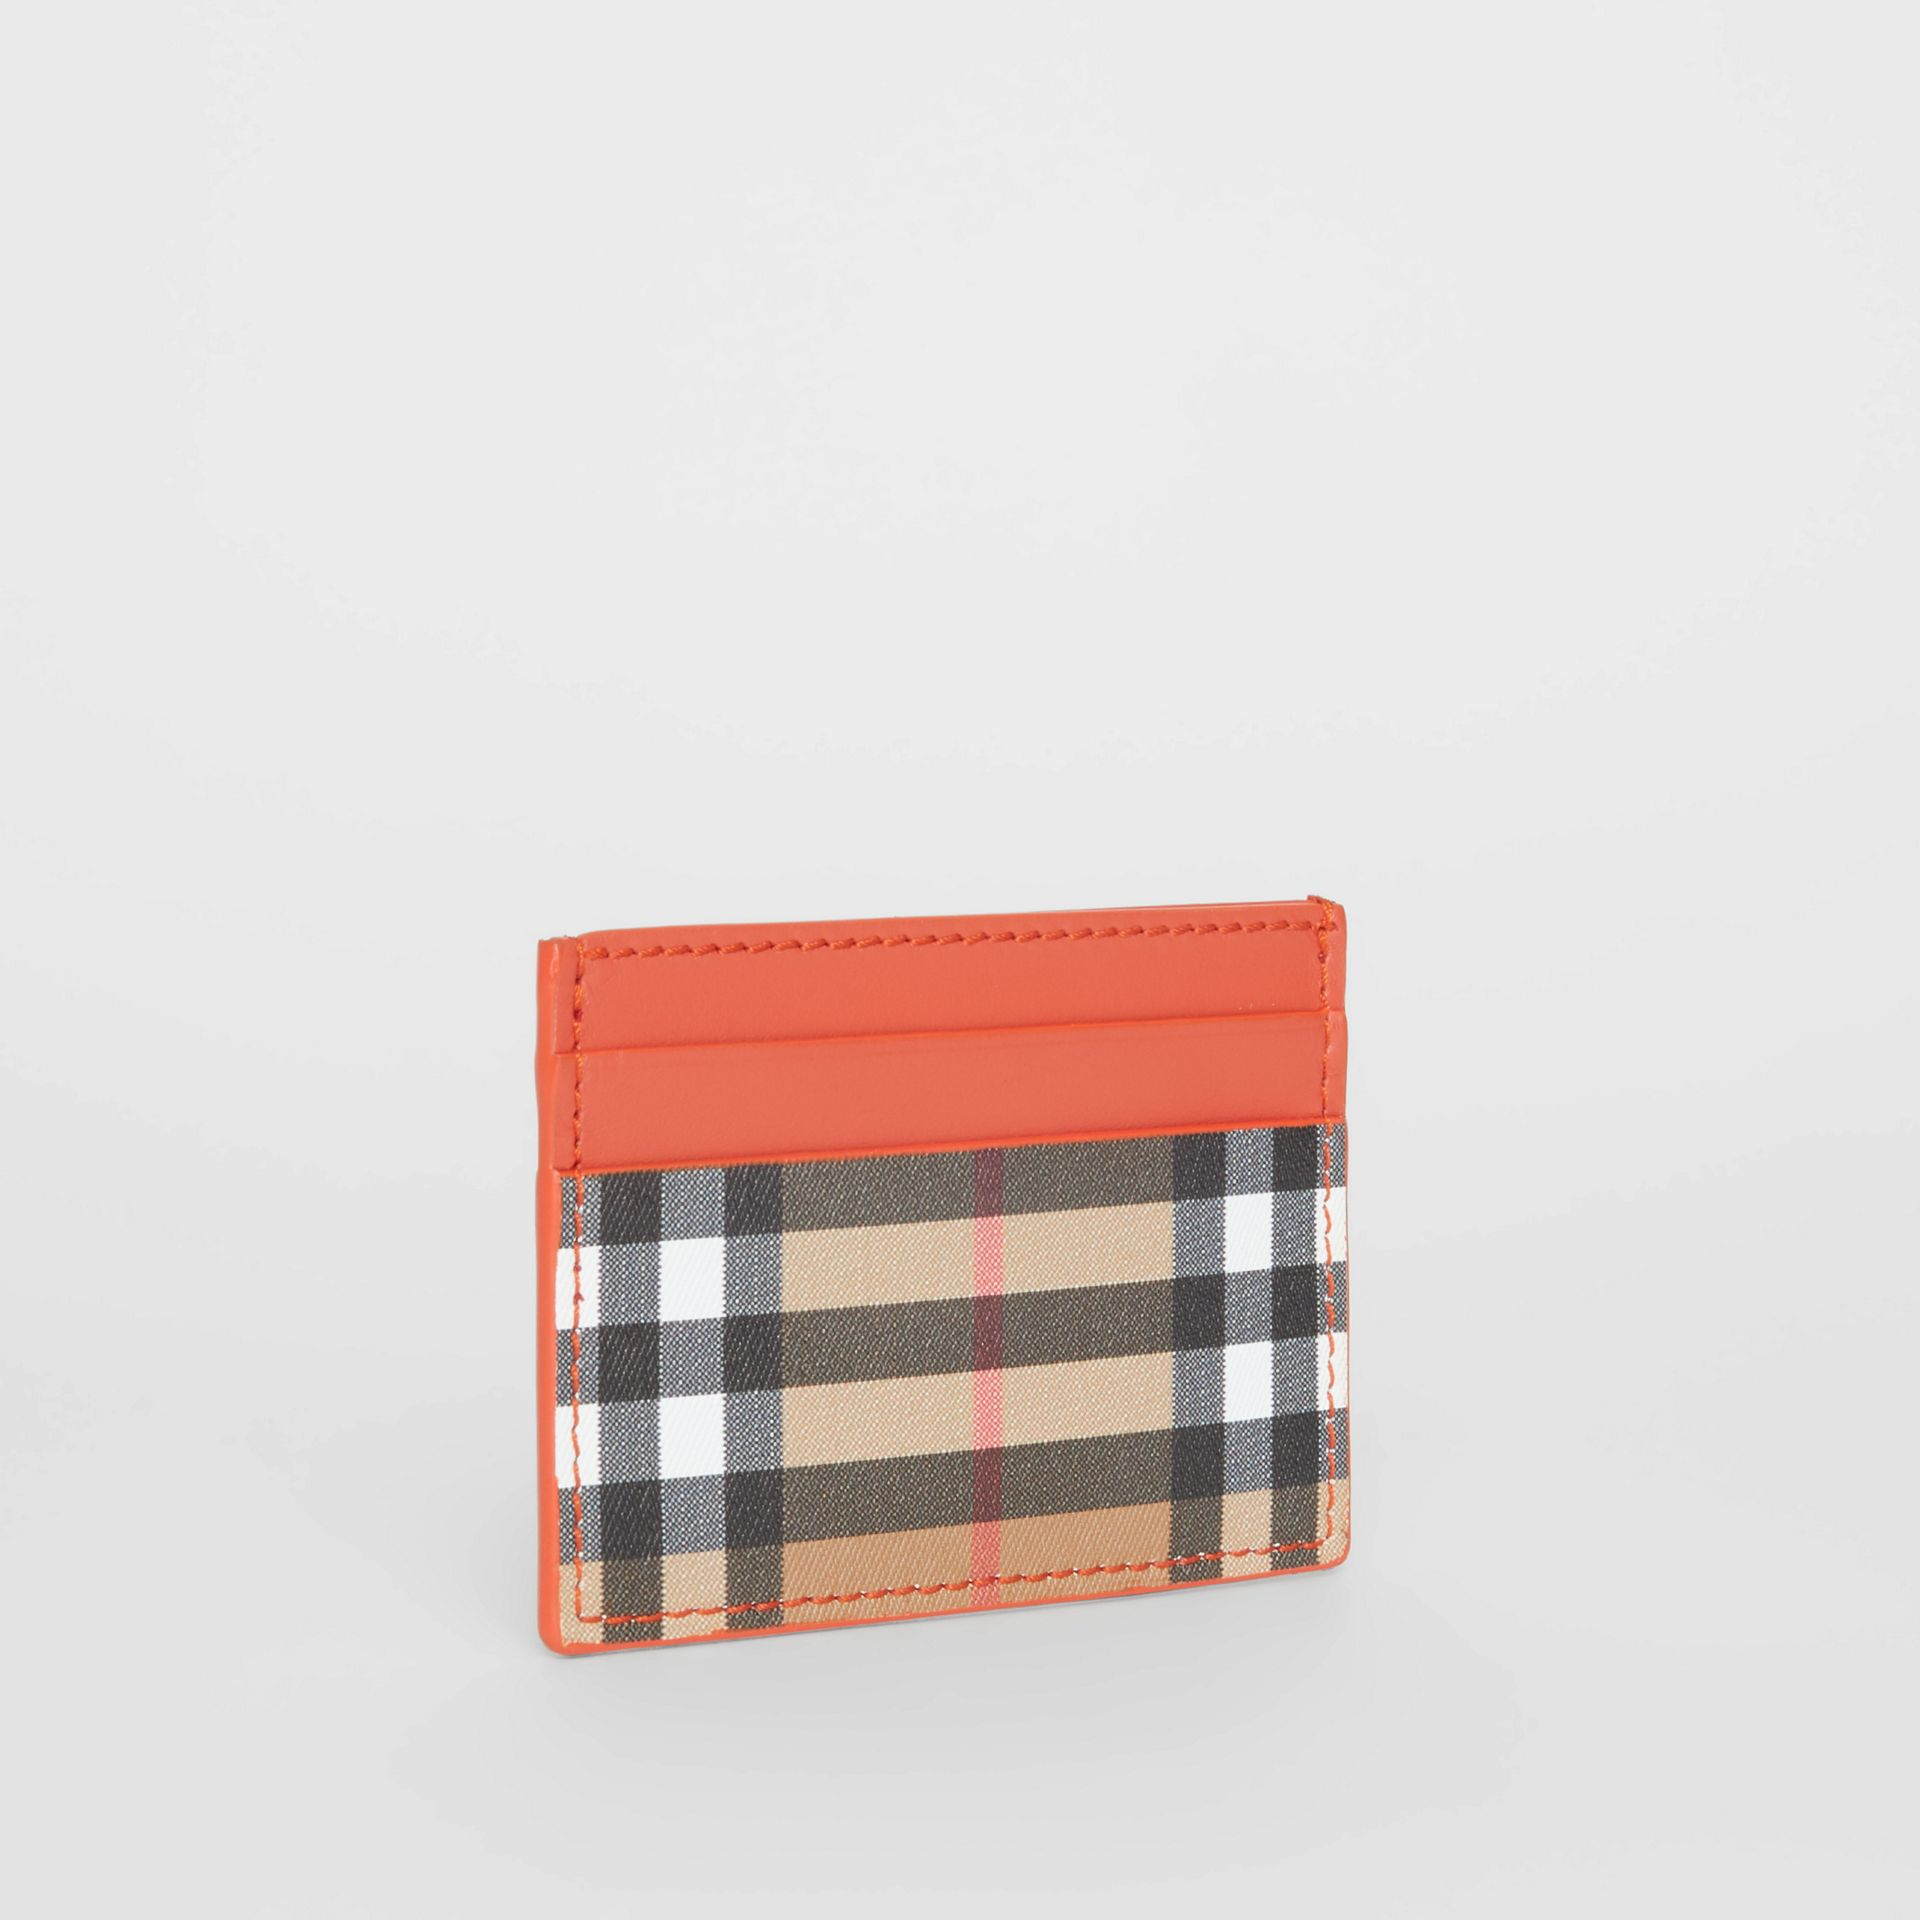 Vintage Check and Leather Card Case in Clementine - Women | Burberry Hong Kong S.A.R - gallery image 3